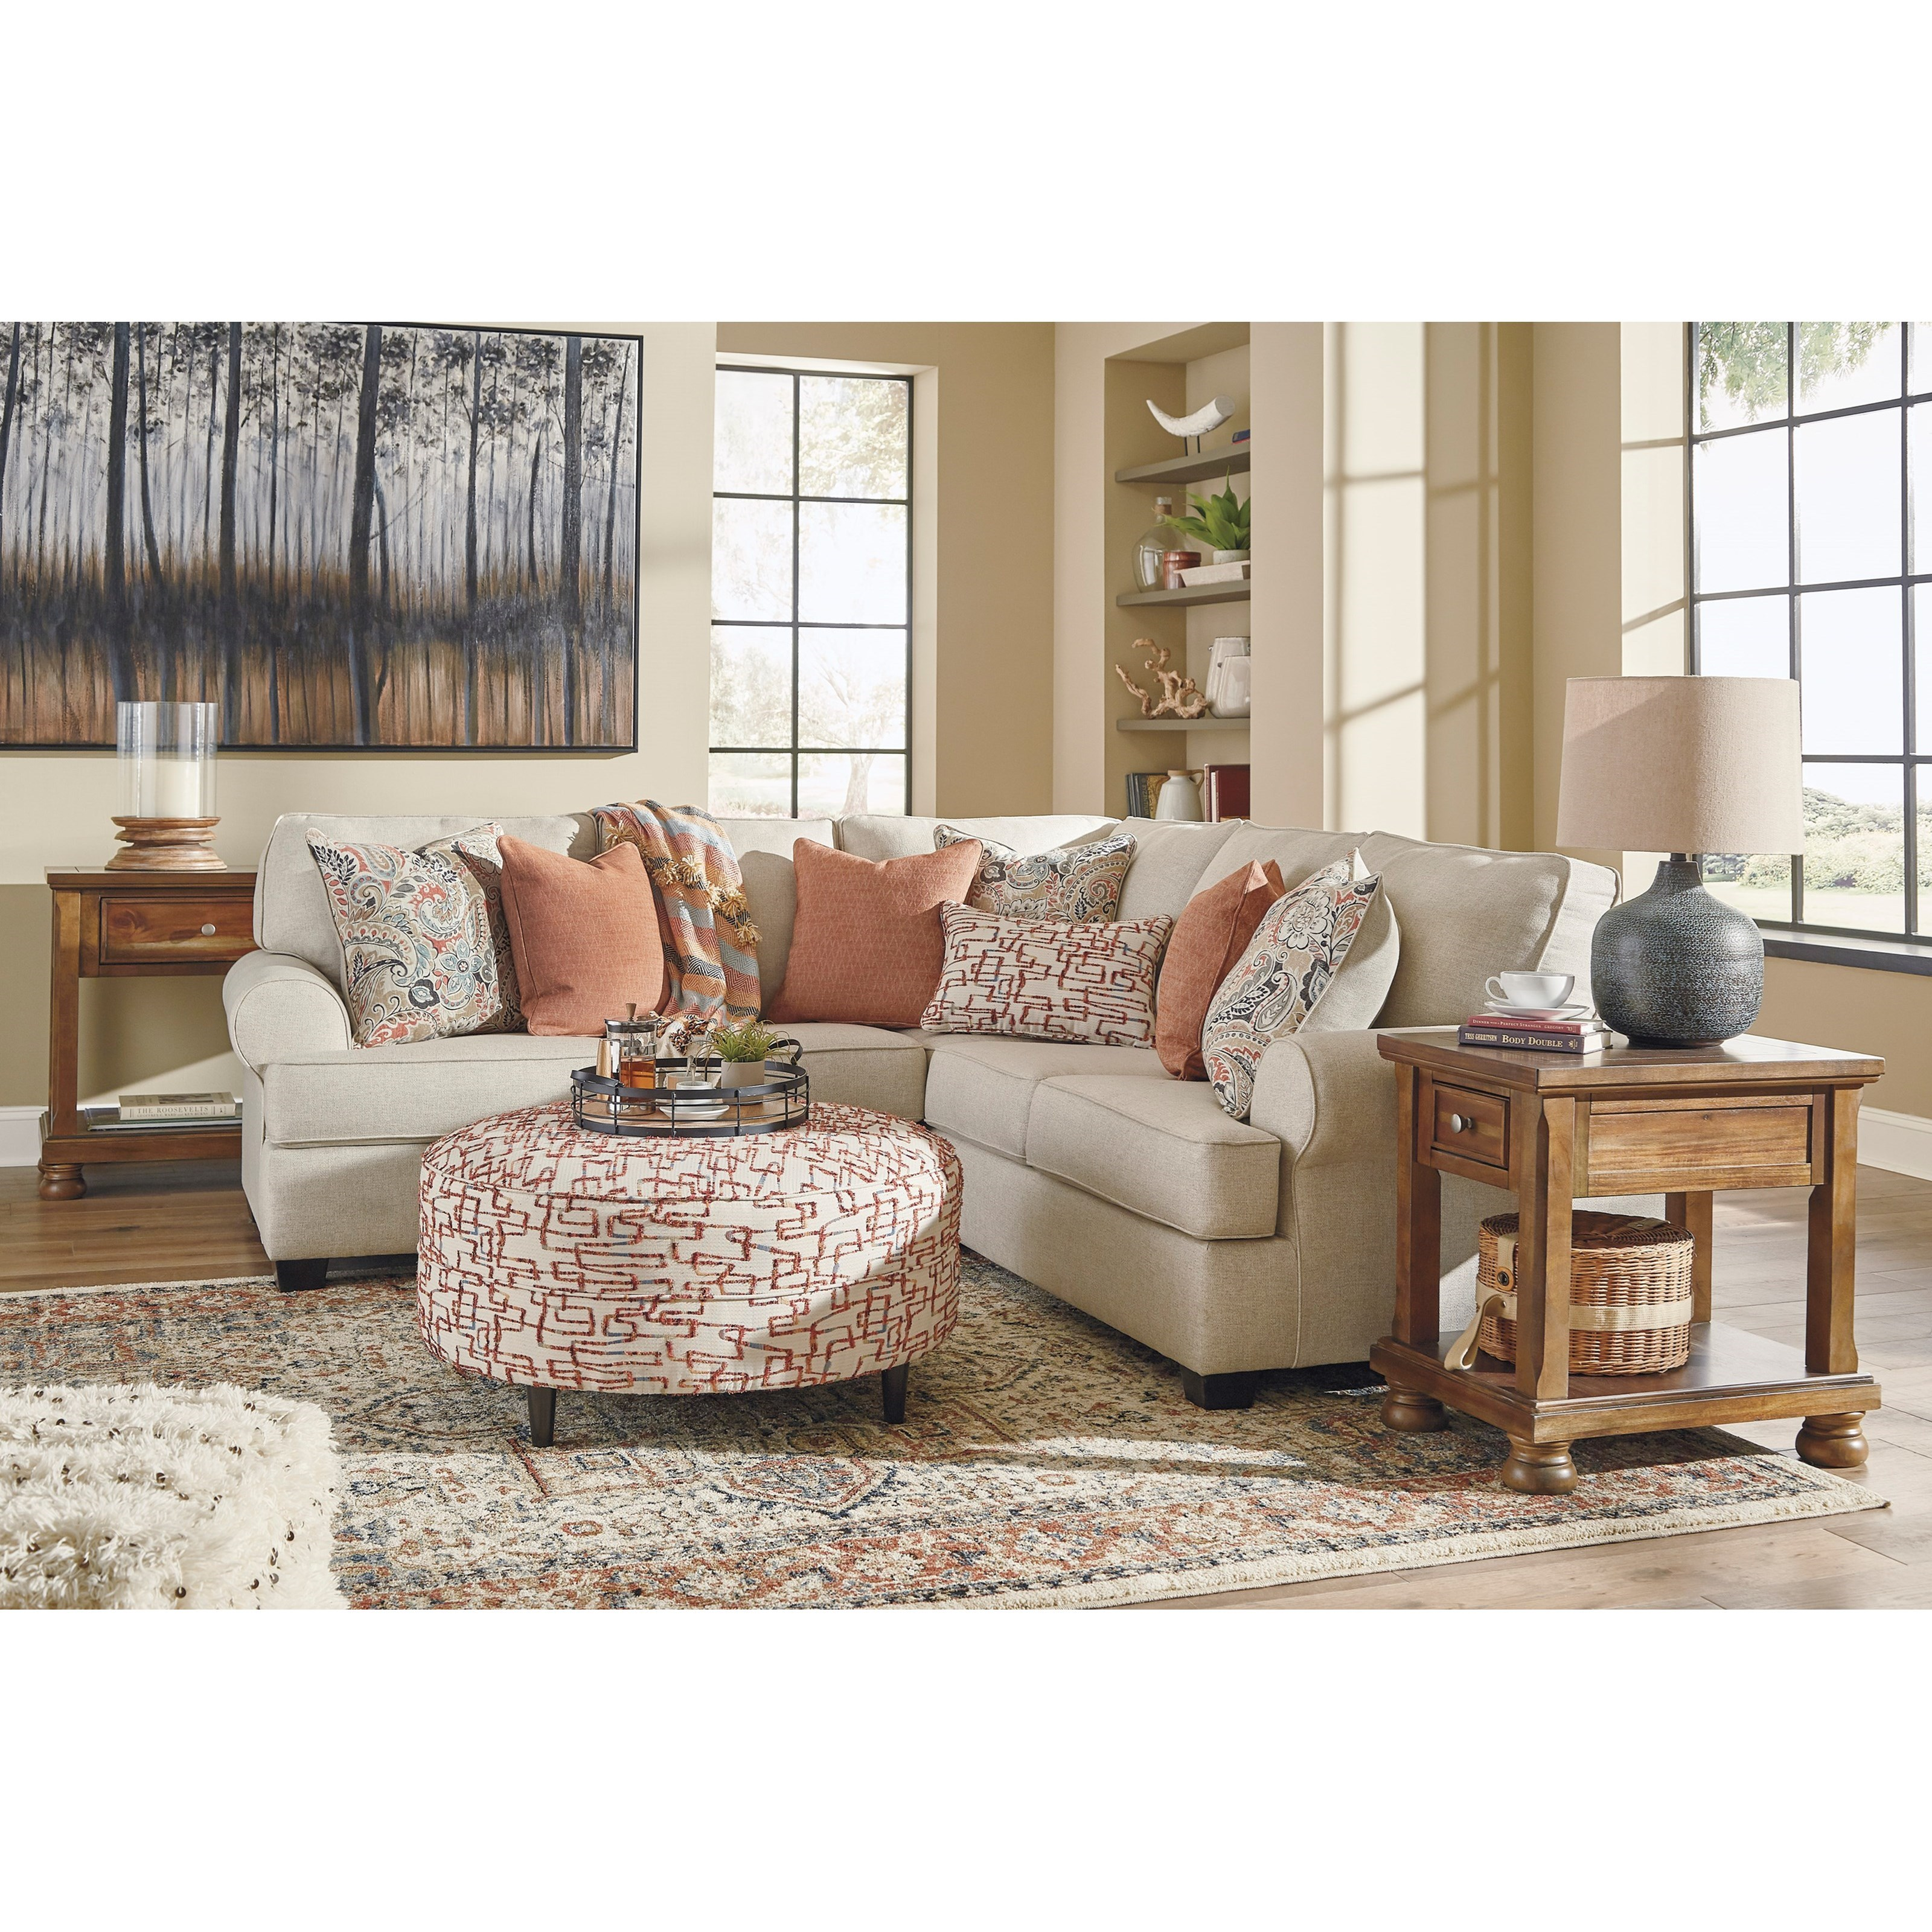 Amici Living Room Group by Signature Design by Ashley at Beds N Stuff